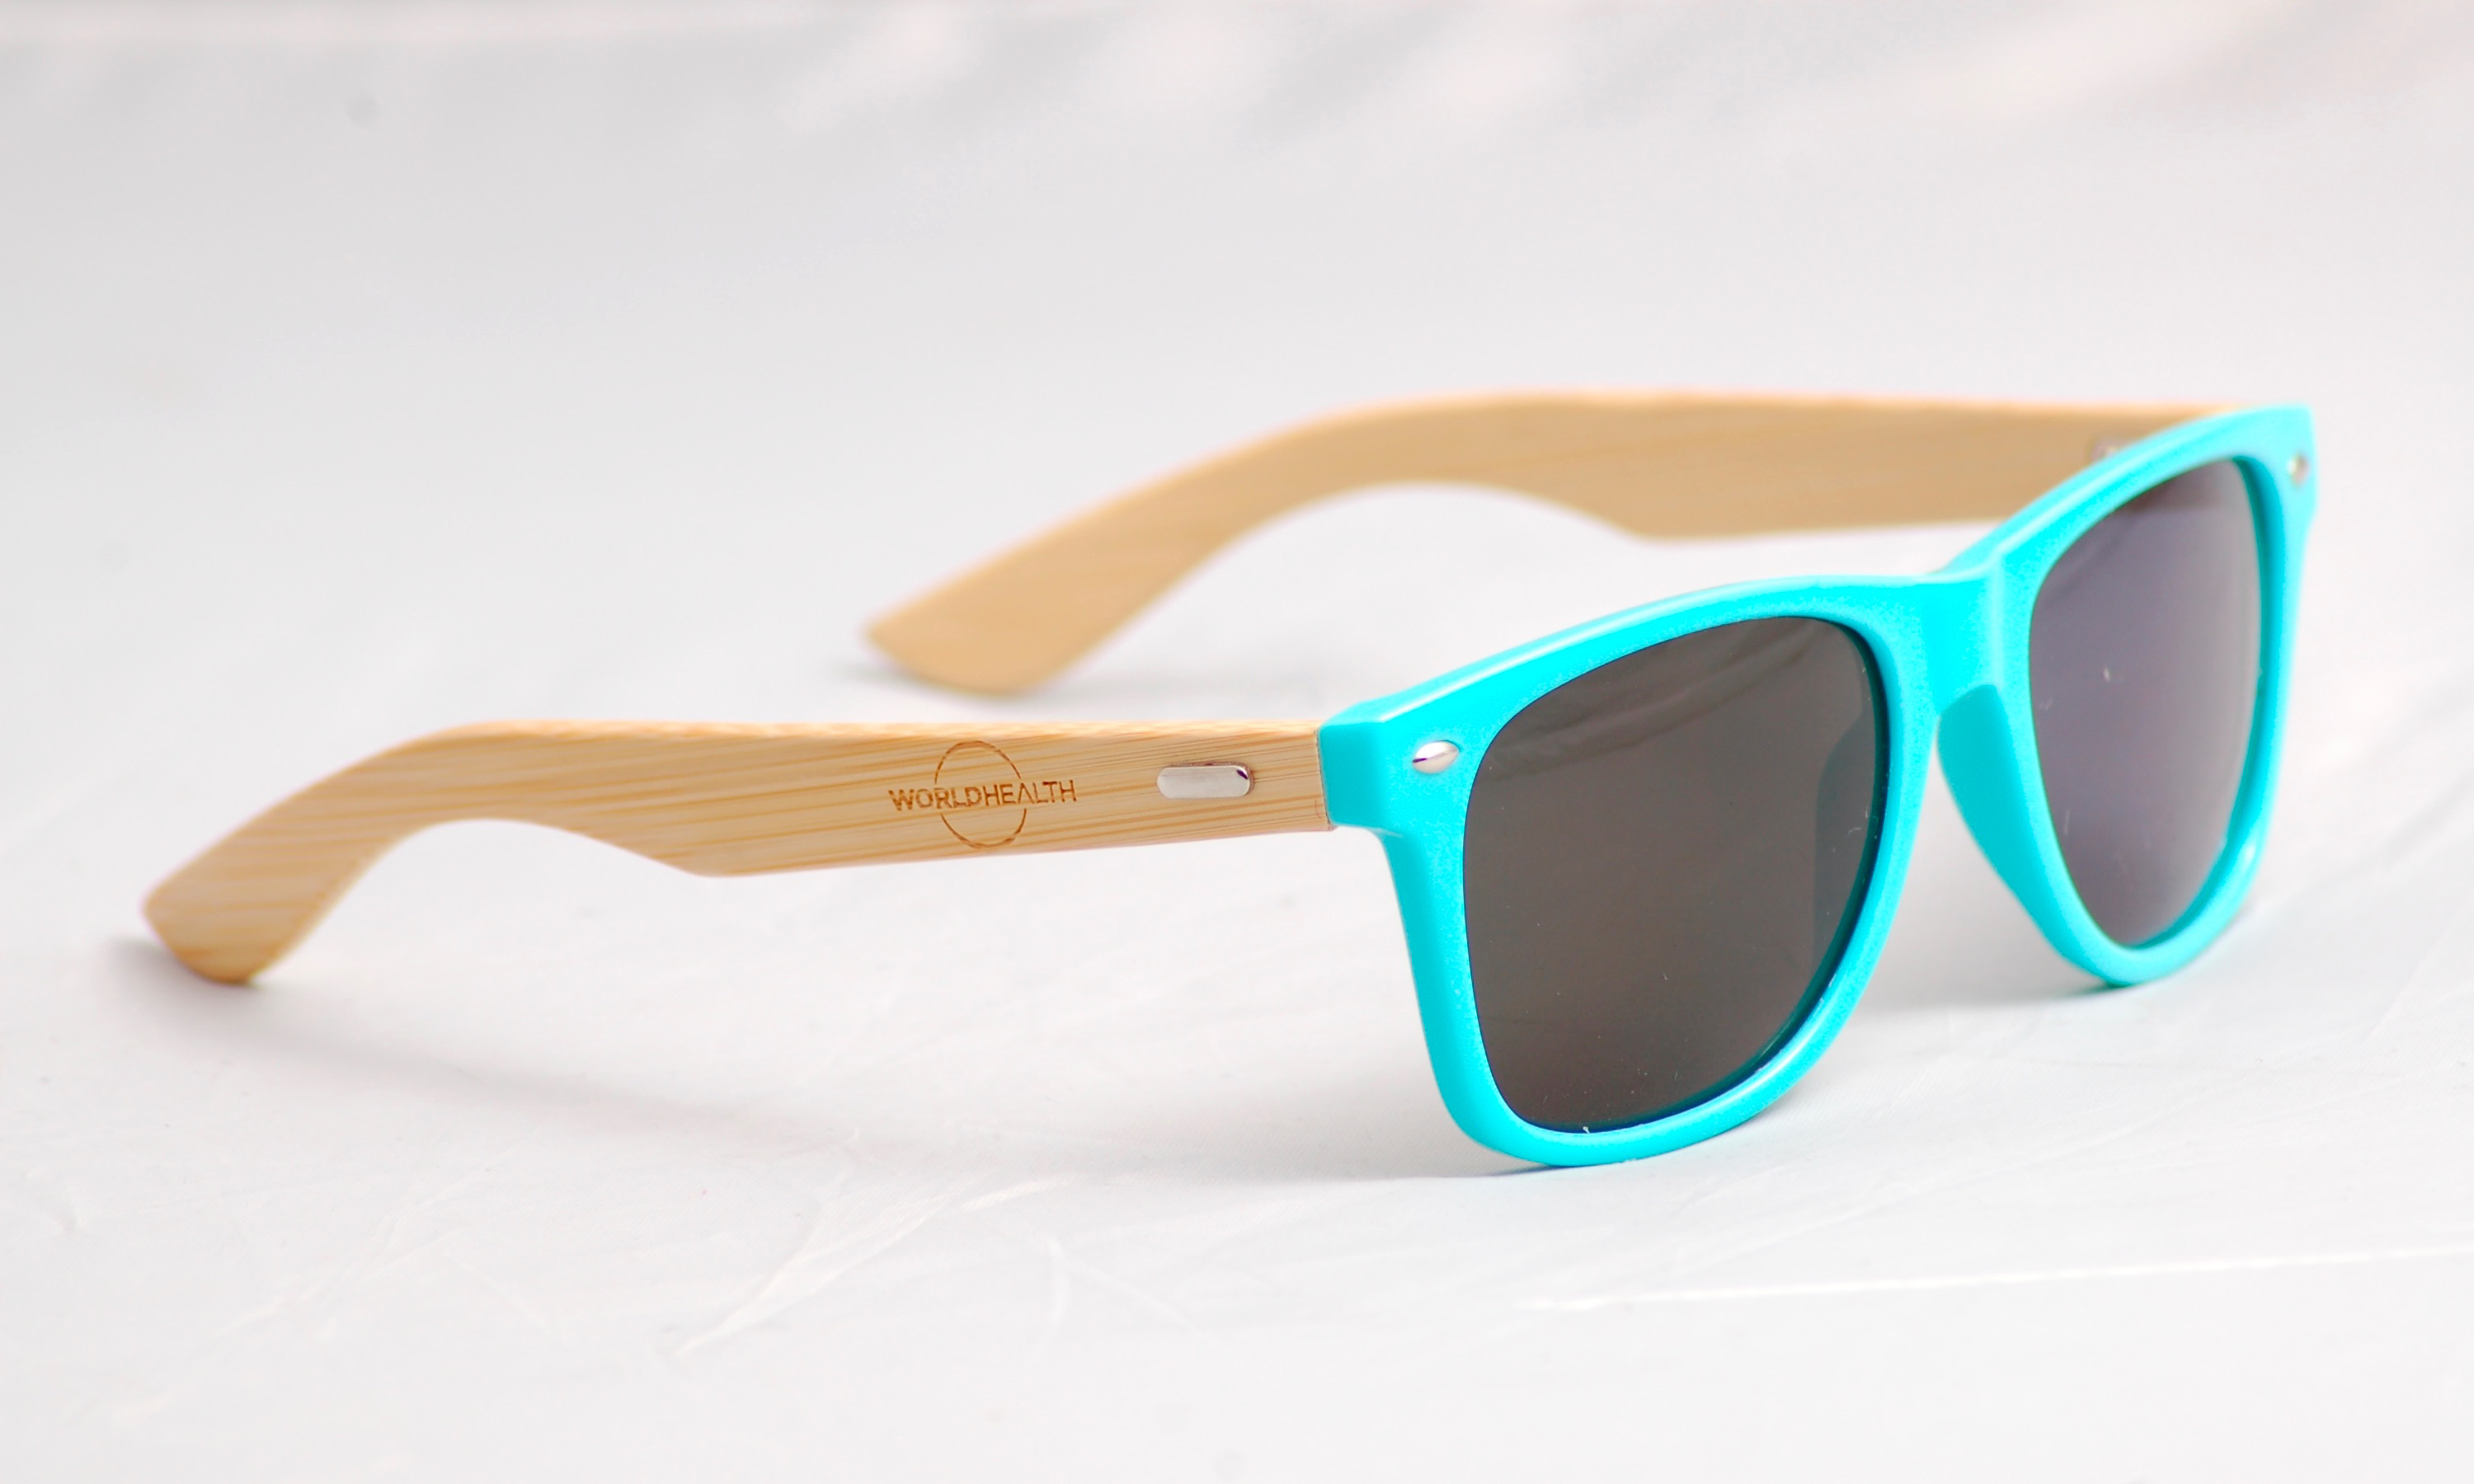 699d0c0a7f World Health Wood Sunglasses - Promo-glasses